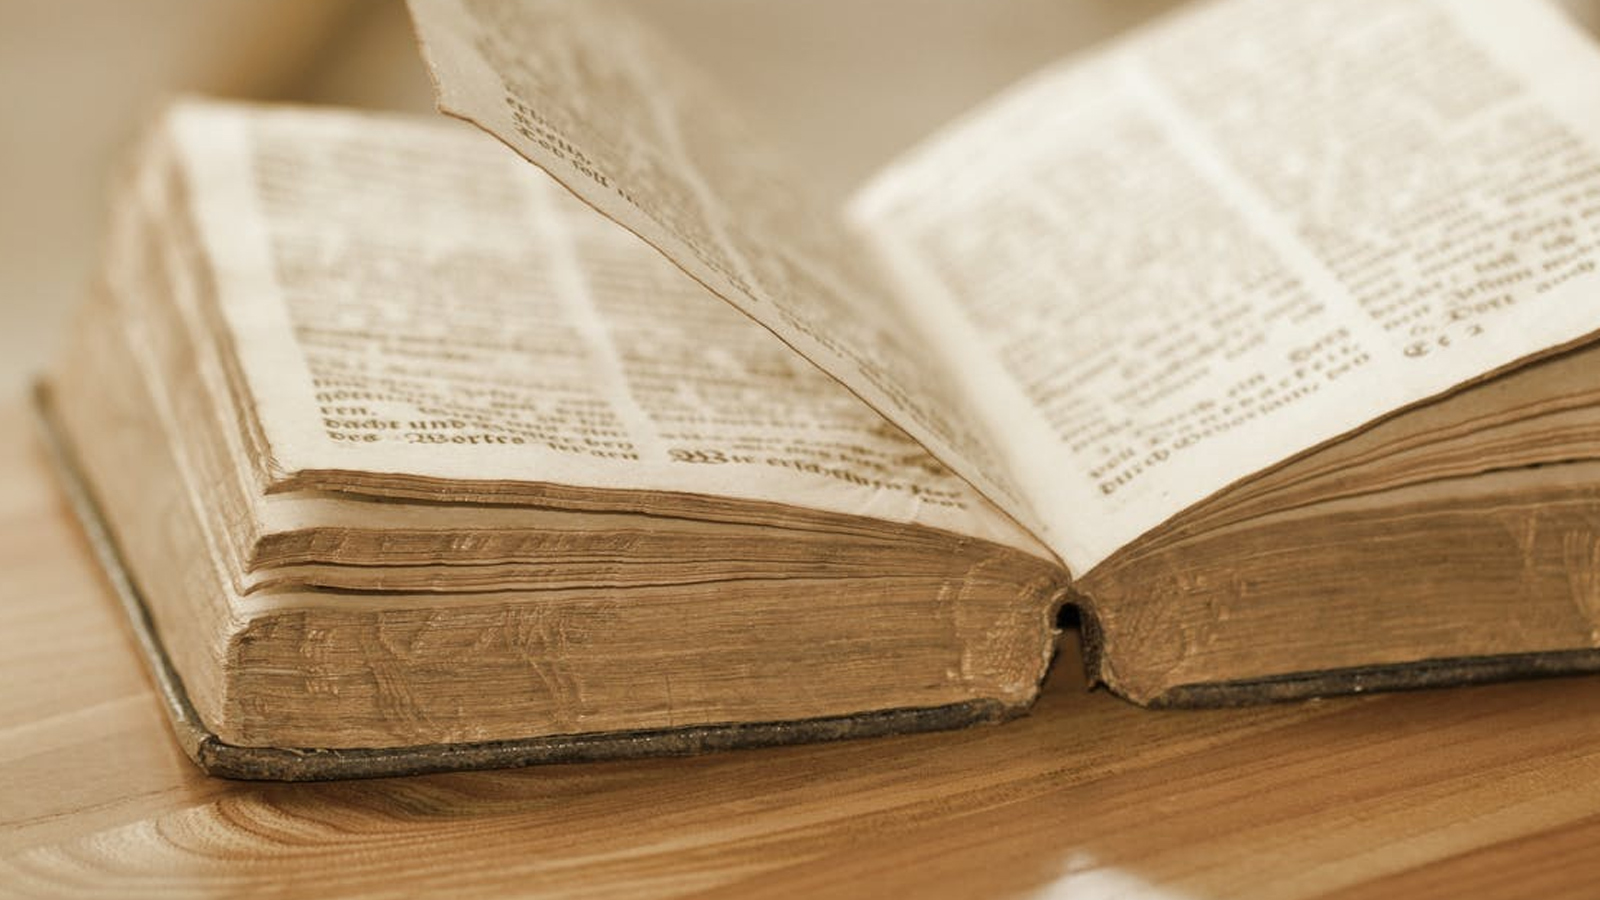 Why Shouldn't We Trust What the Non-Canonical Gospels Say About Jesus